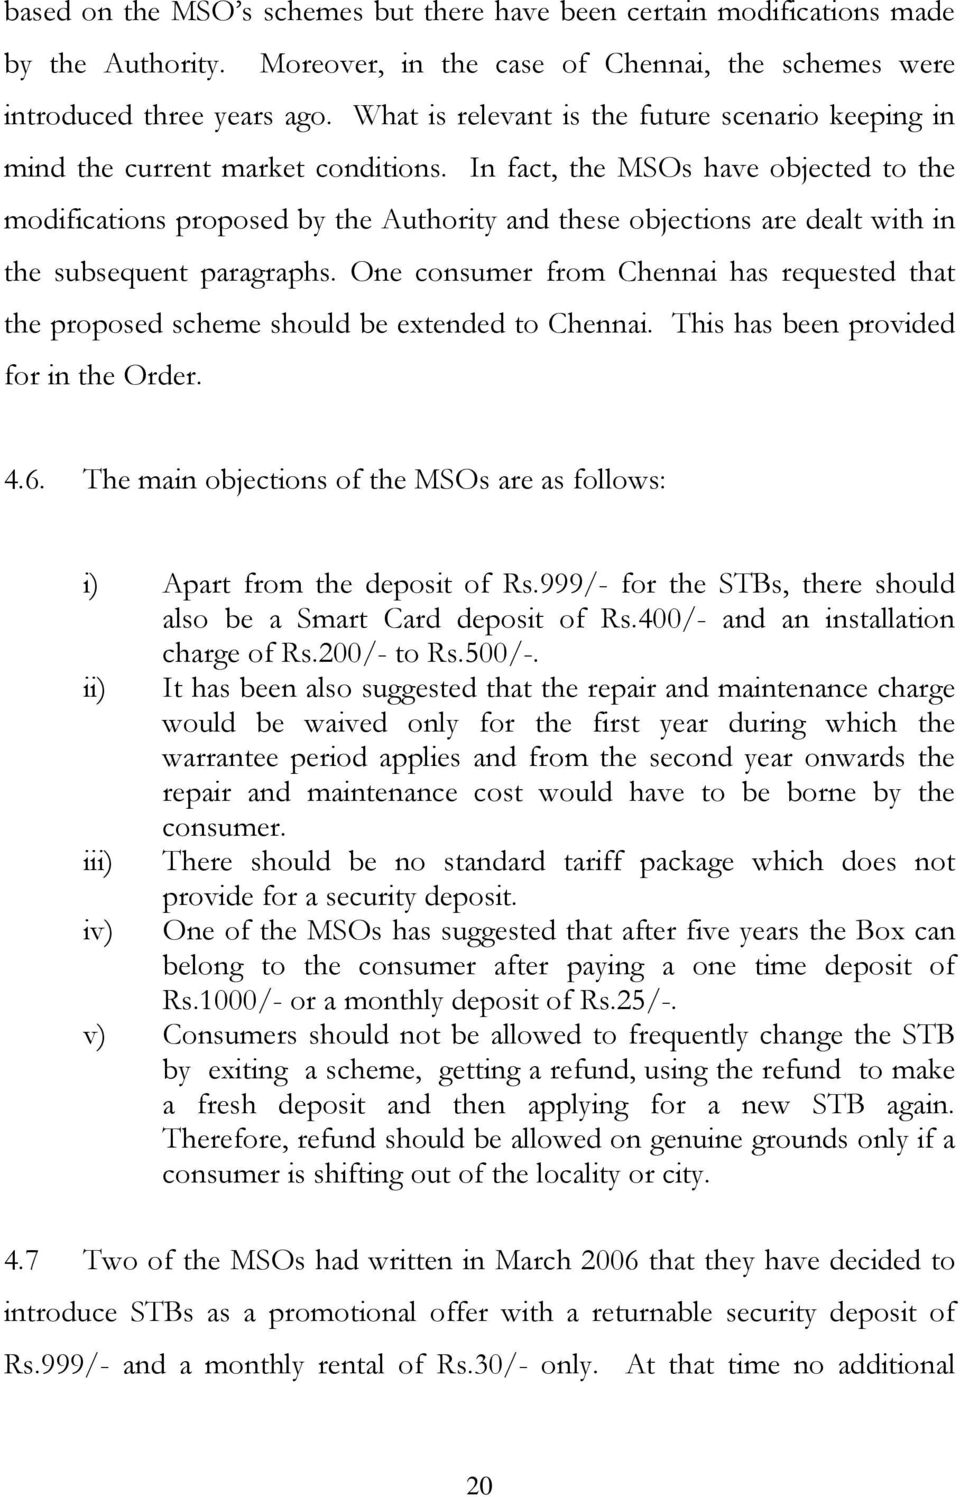 In fact, the MSOs have objected to the modifications proposed by the Authority and these objections are dealt with in the subsequent paragraphs.